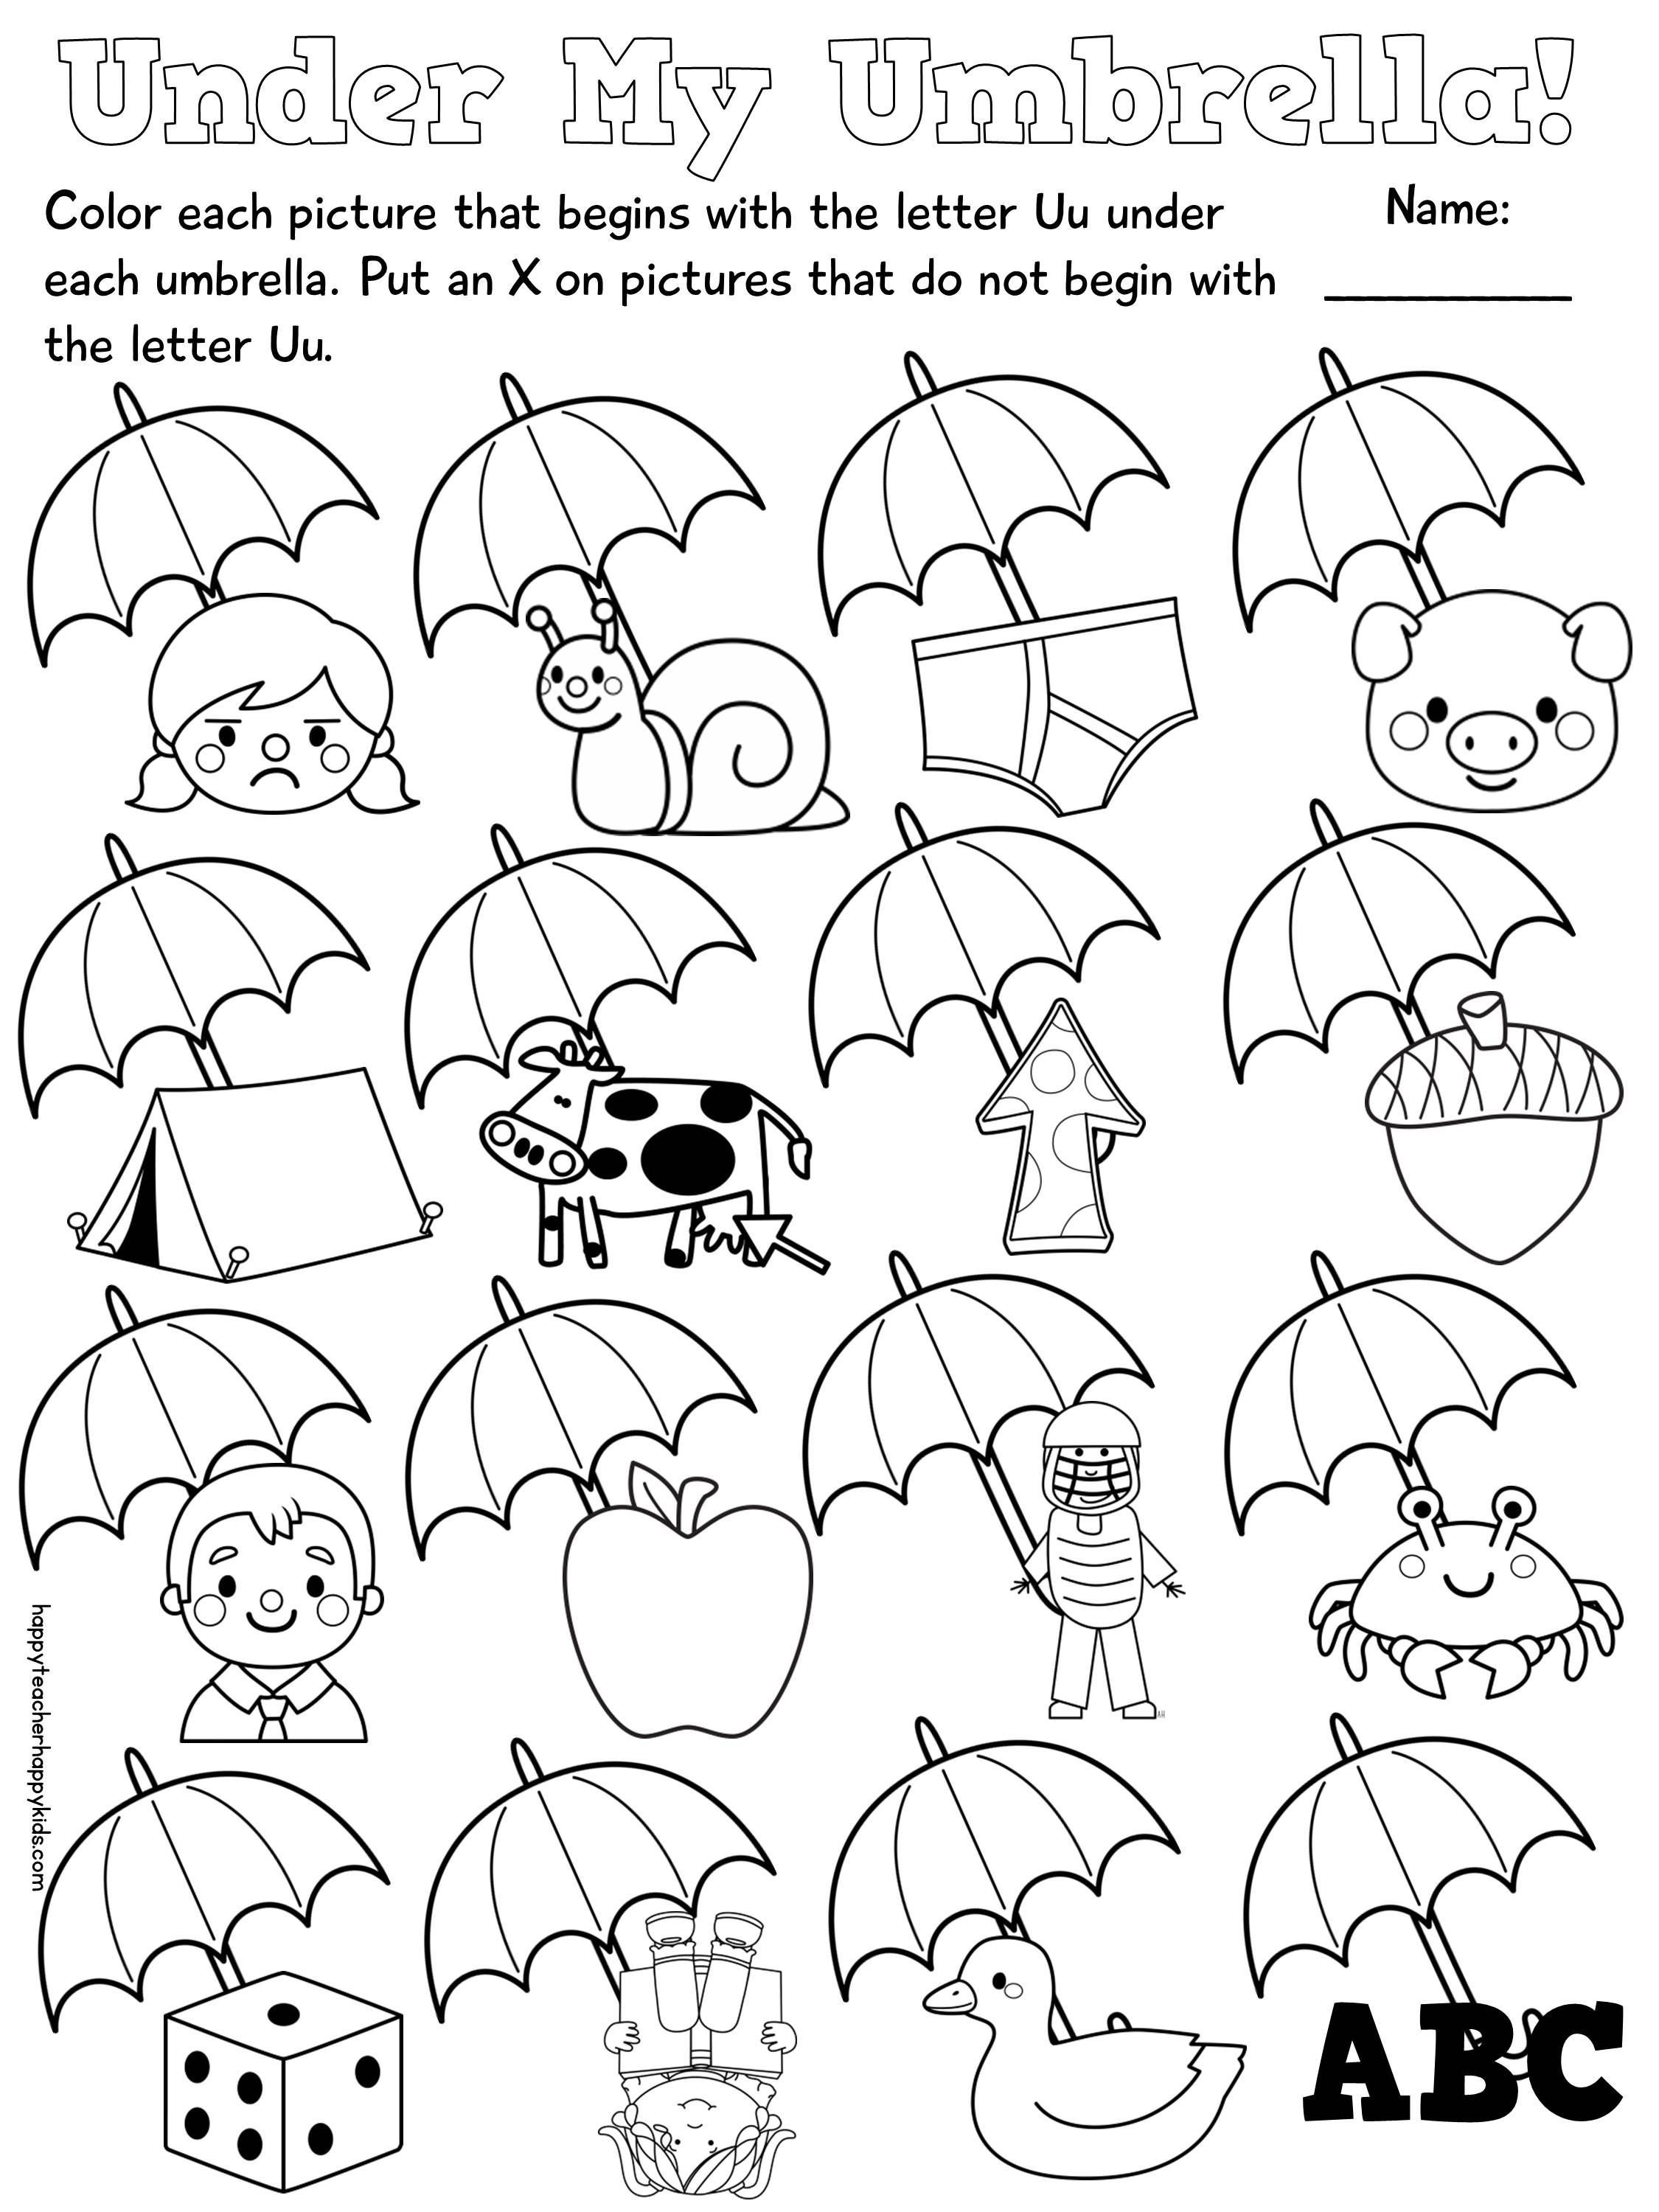 Phonics Letter U Worksheets For Kindergarten. Phonics